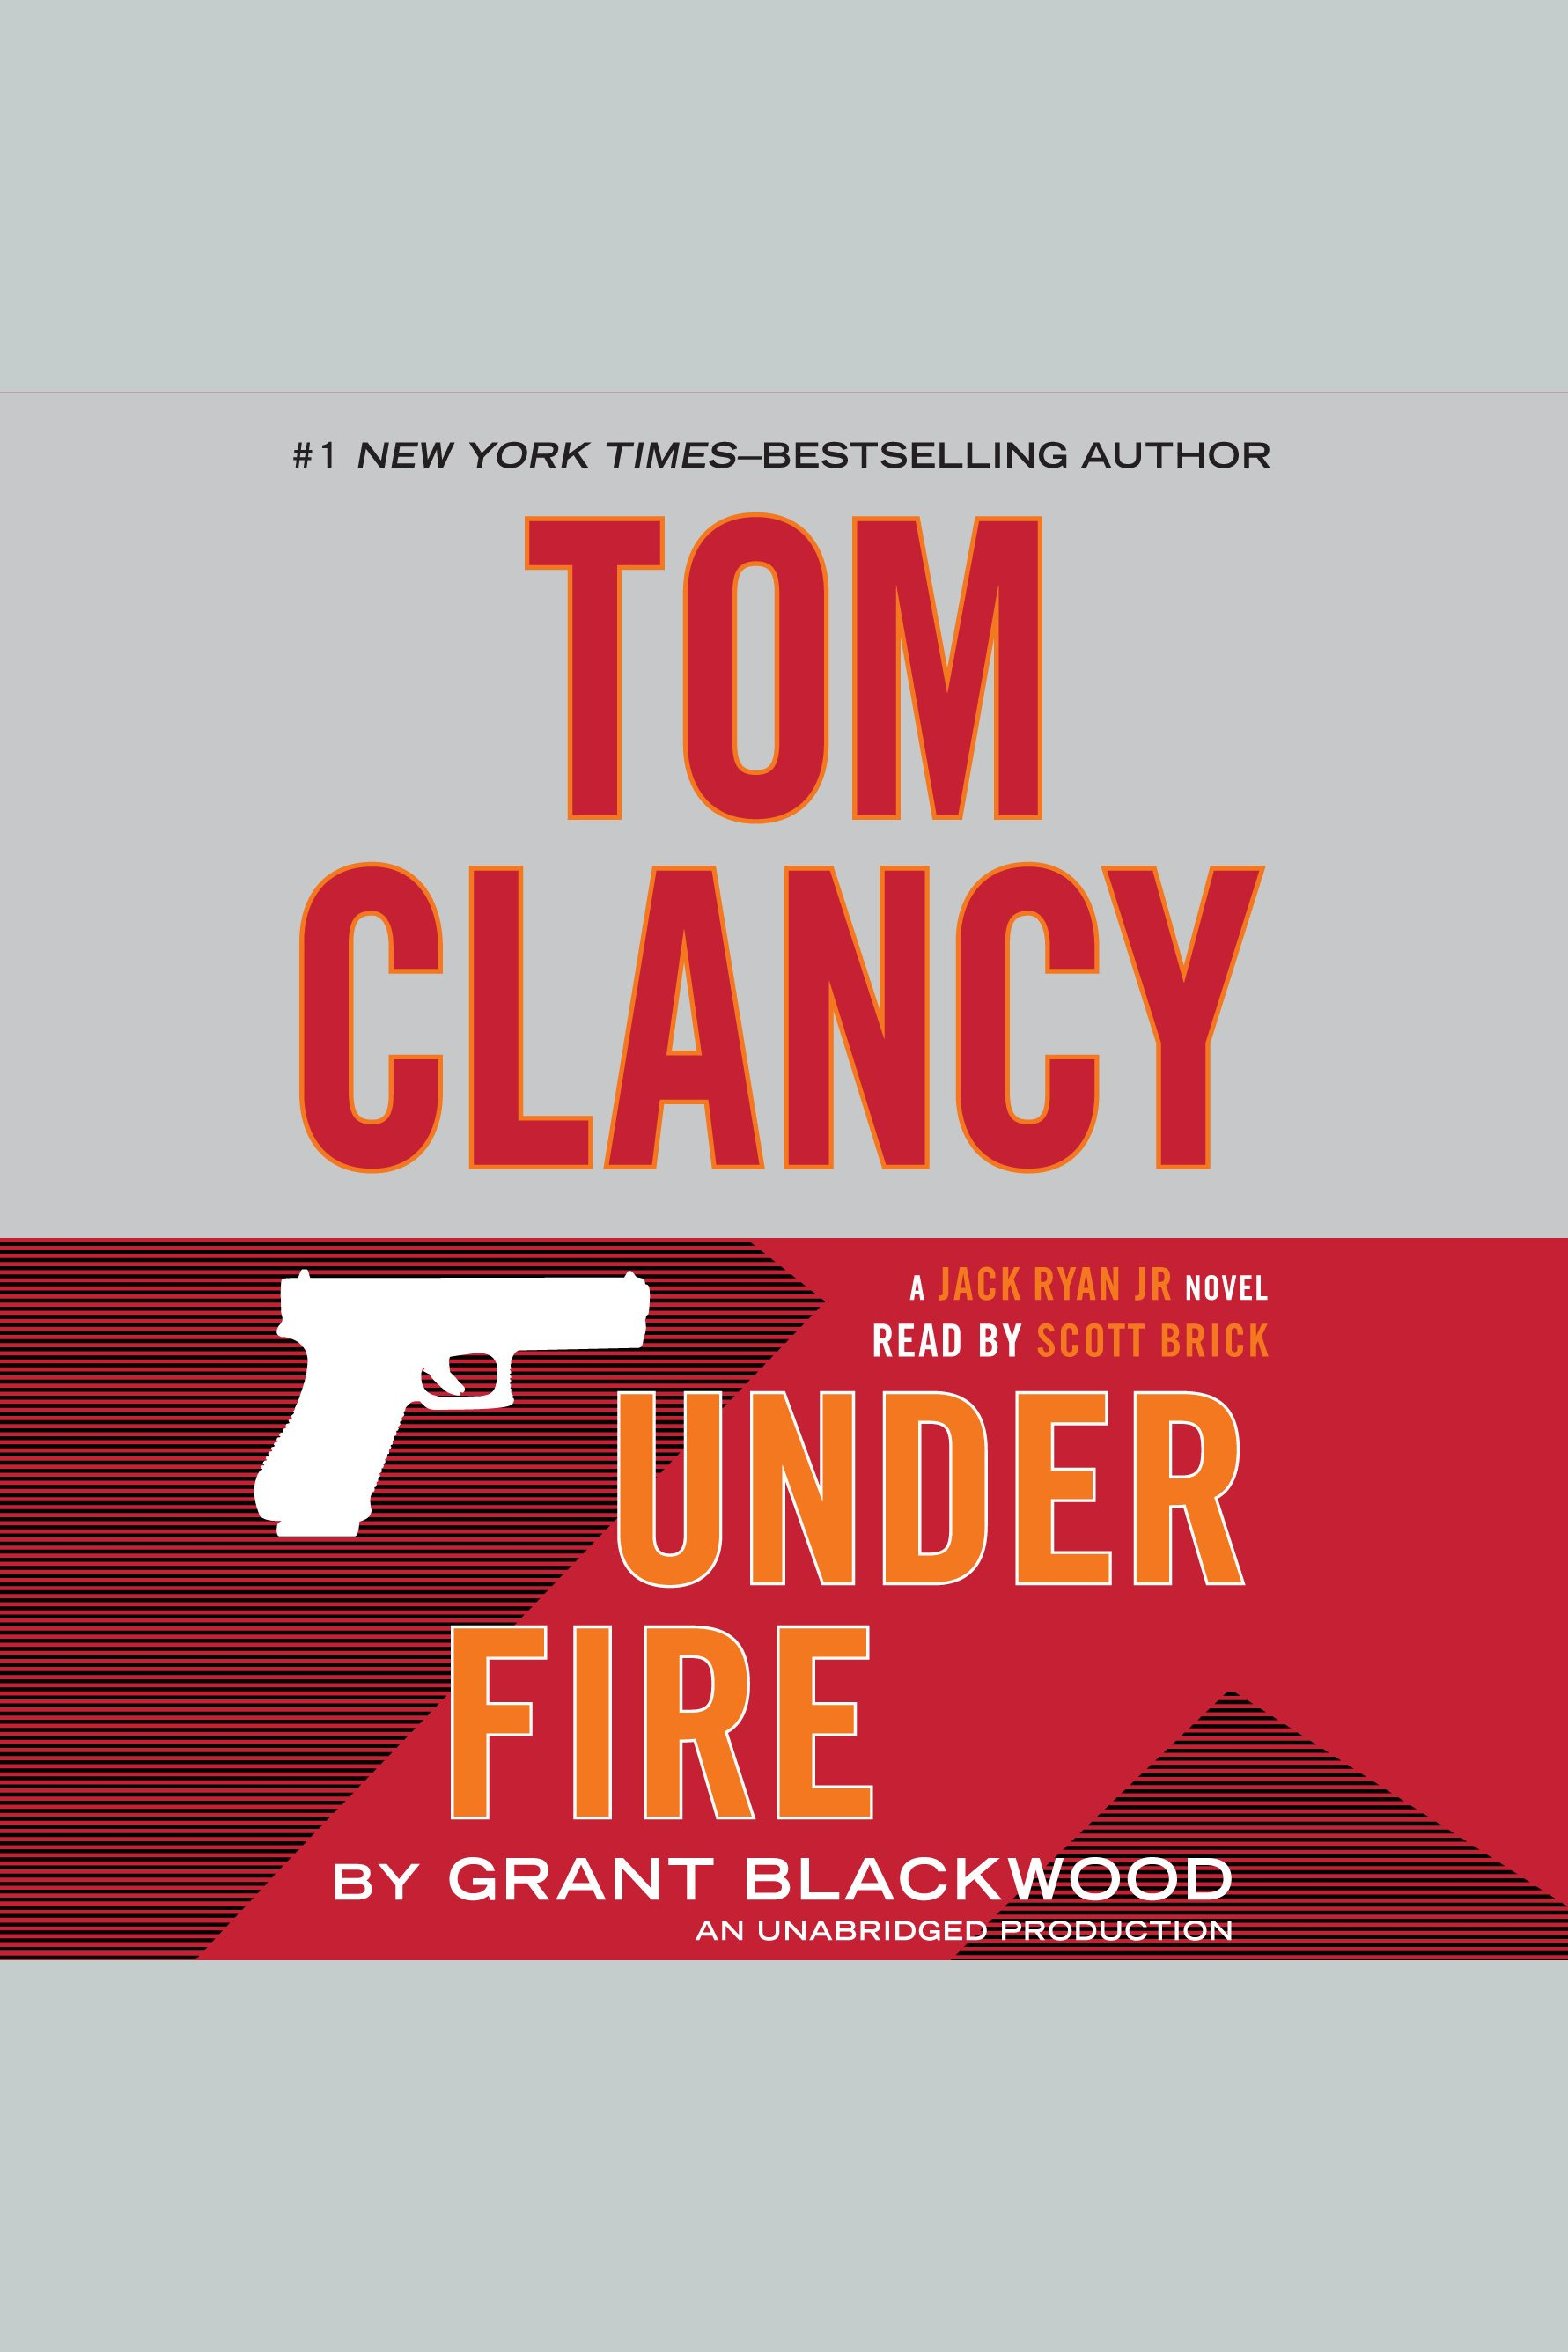 Tom Clancy under fire cover image